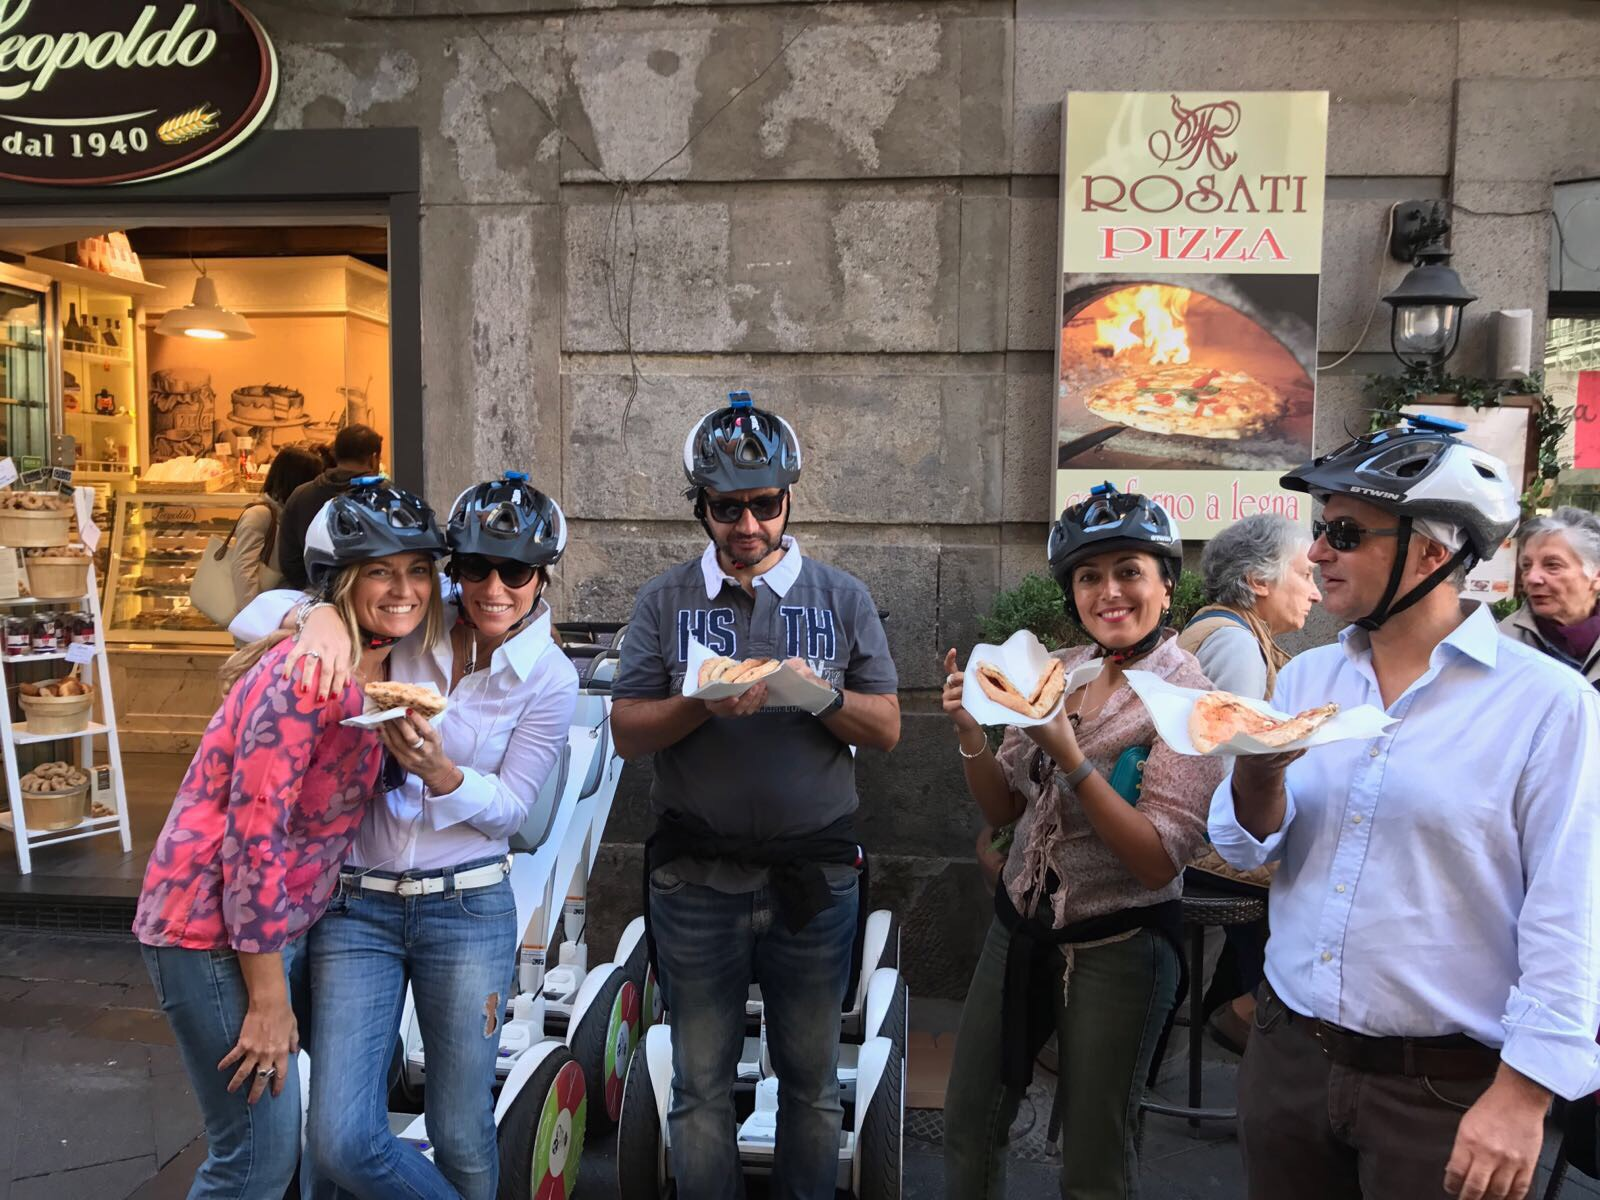 1,5 H FOOD TASTING SEGWAY TOUR